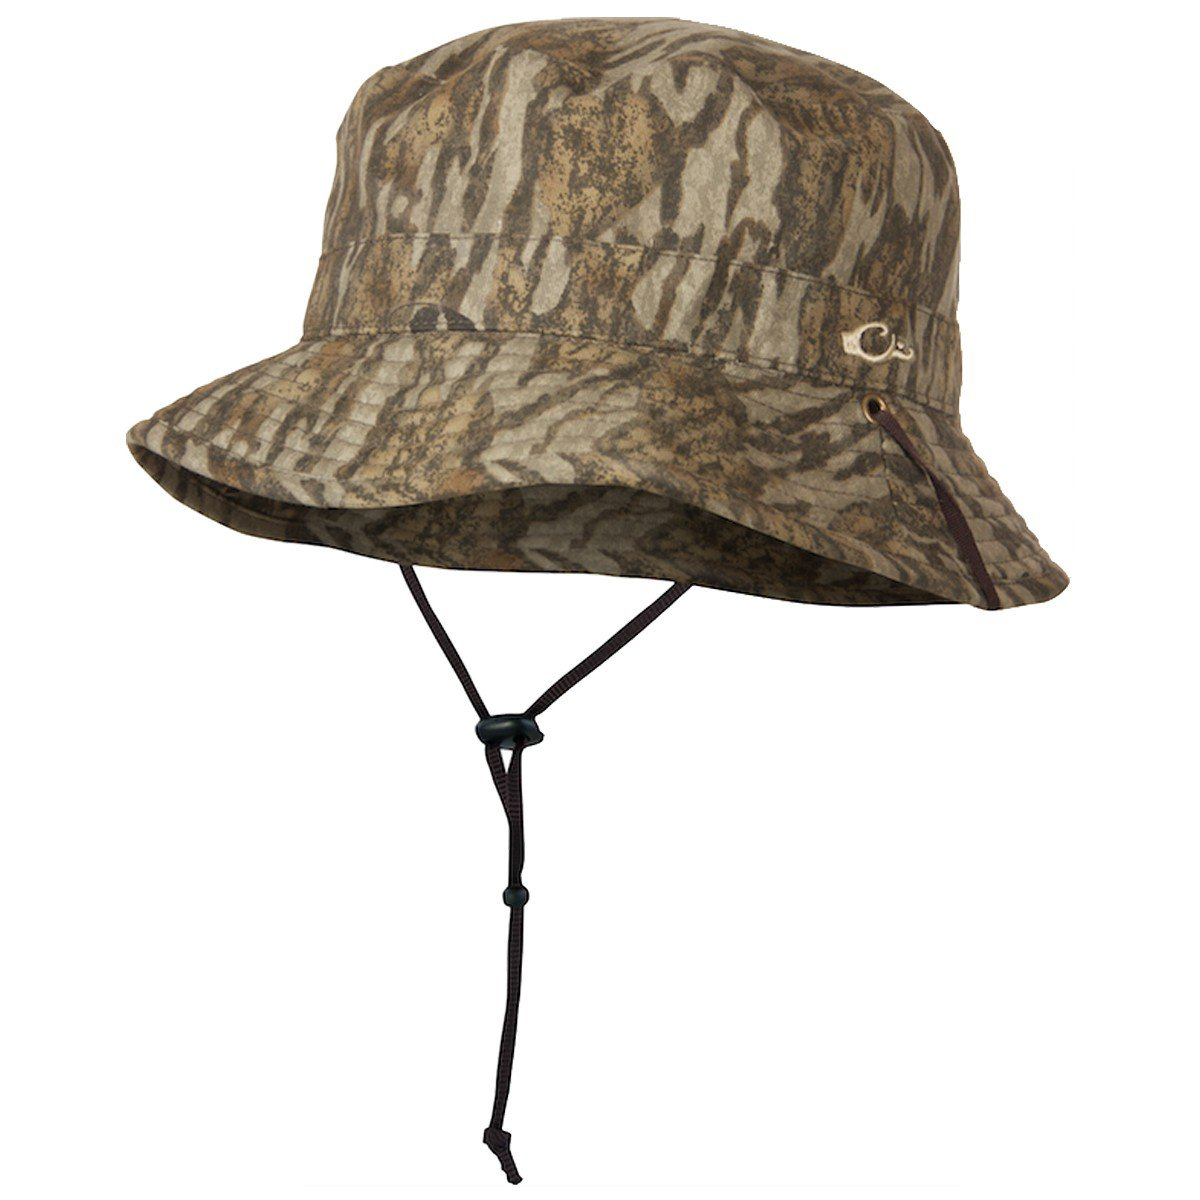 63077b03b1f Amazon.com  Drake Waterproof Boonie Hat  Sports   Outdoors